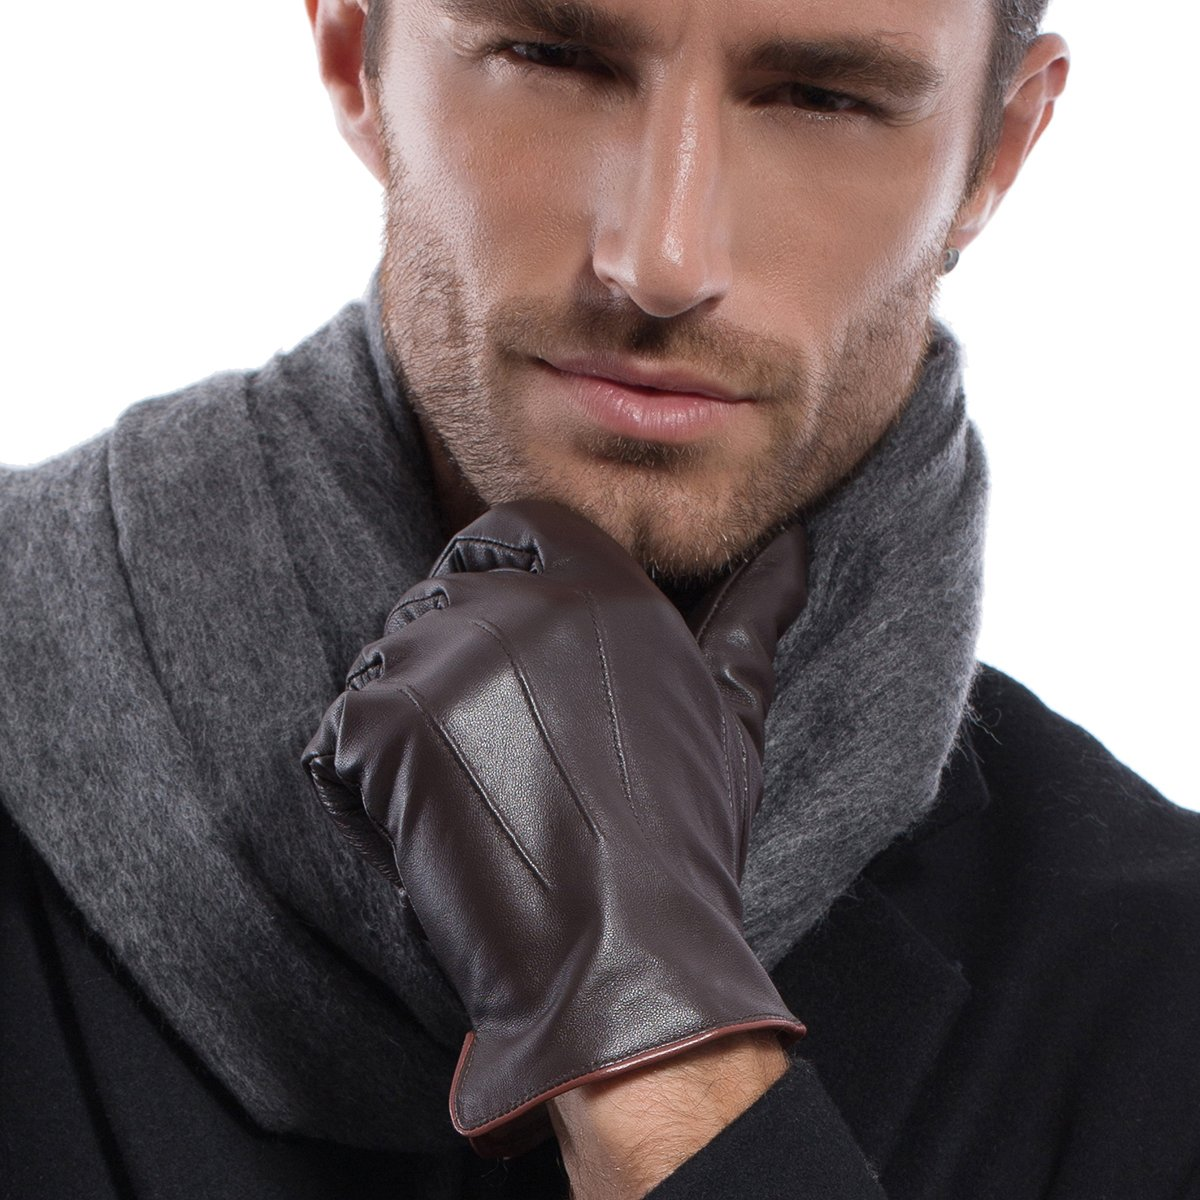 MATSU Luxury Men Winter Warm Lambskin TouchScreen Cashmere Lined Leather Gloves M1006